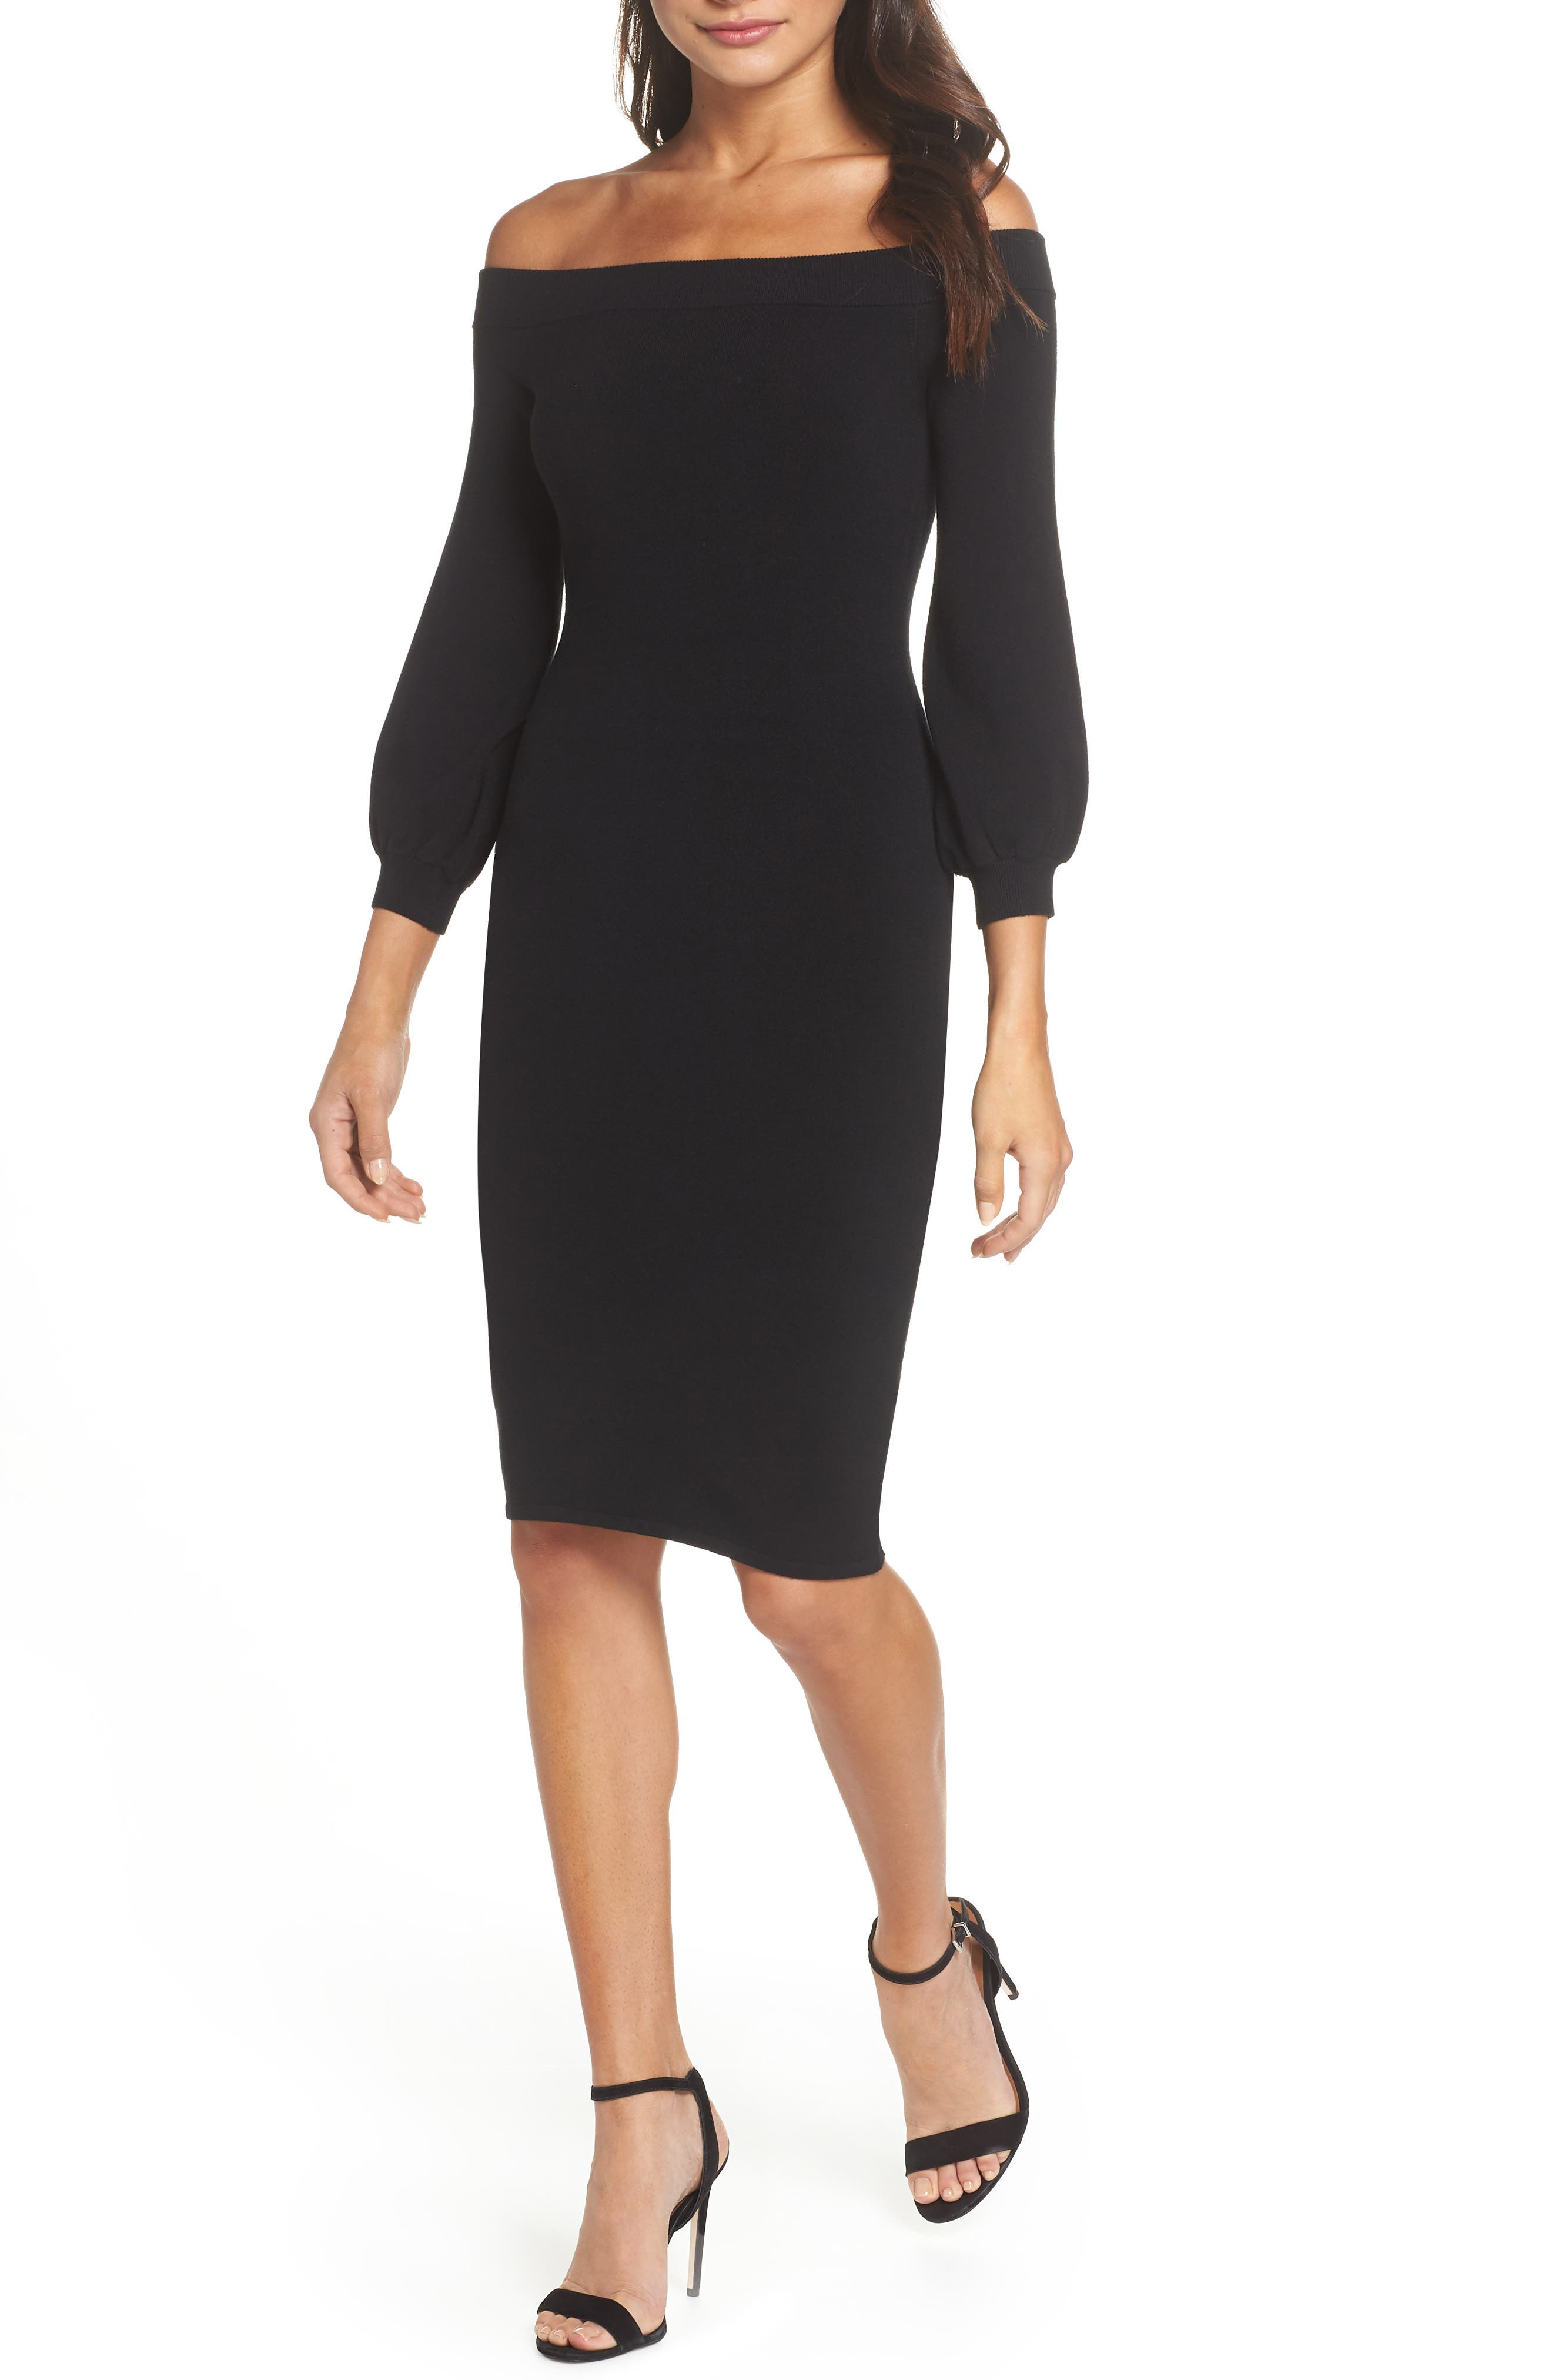 ALI & JAY STANDING STRONG OFF THE SHOULDER MIDI SWEATER DRESS